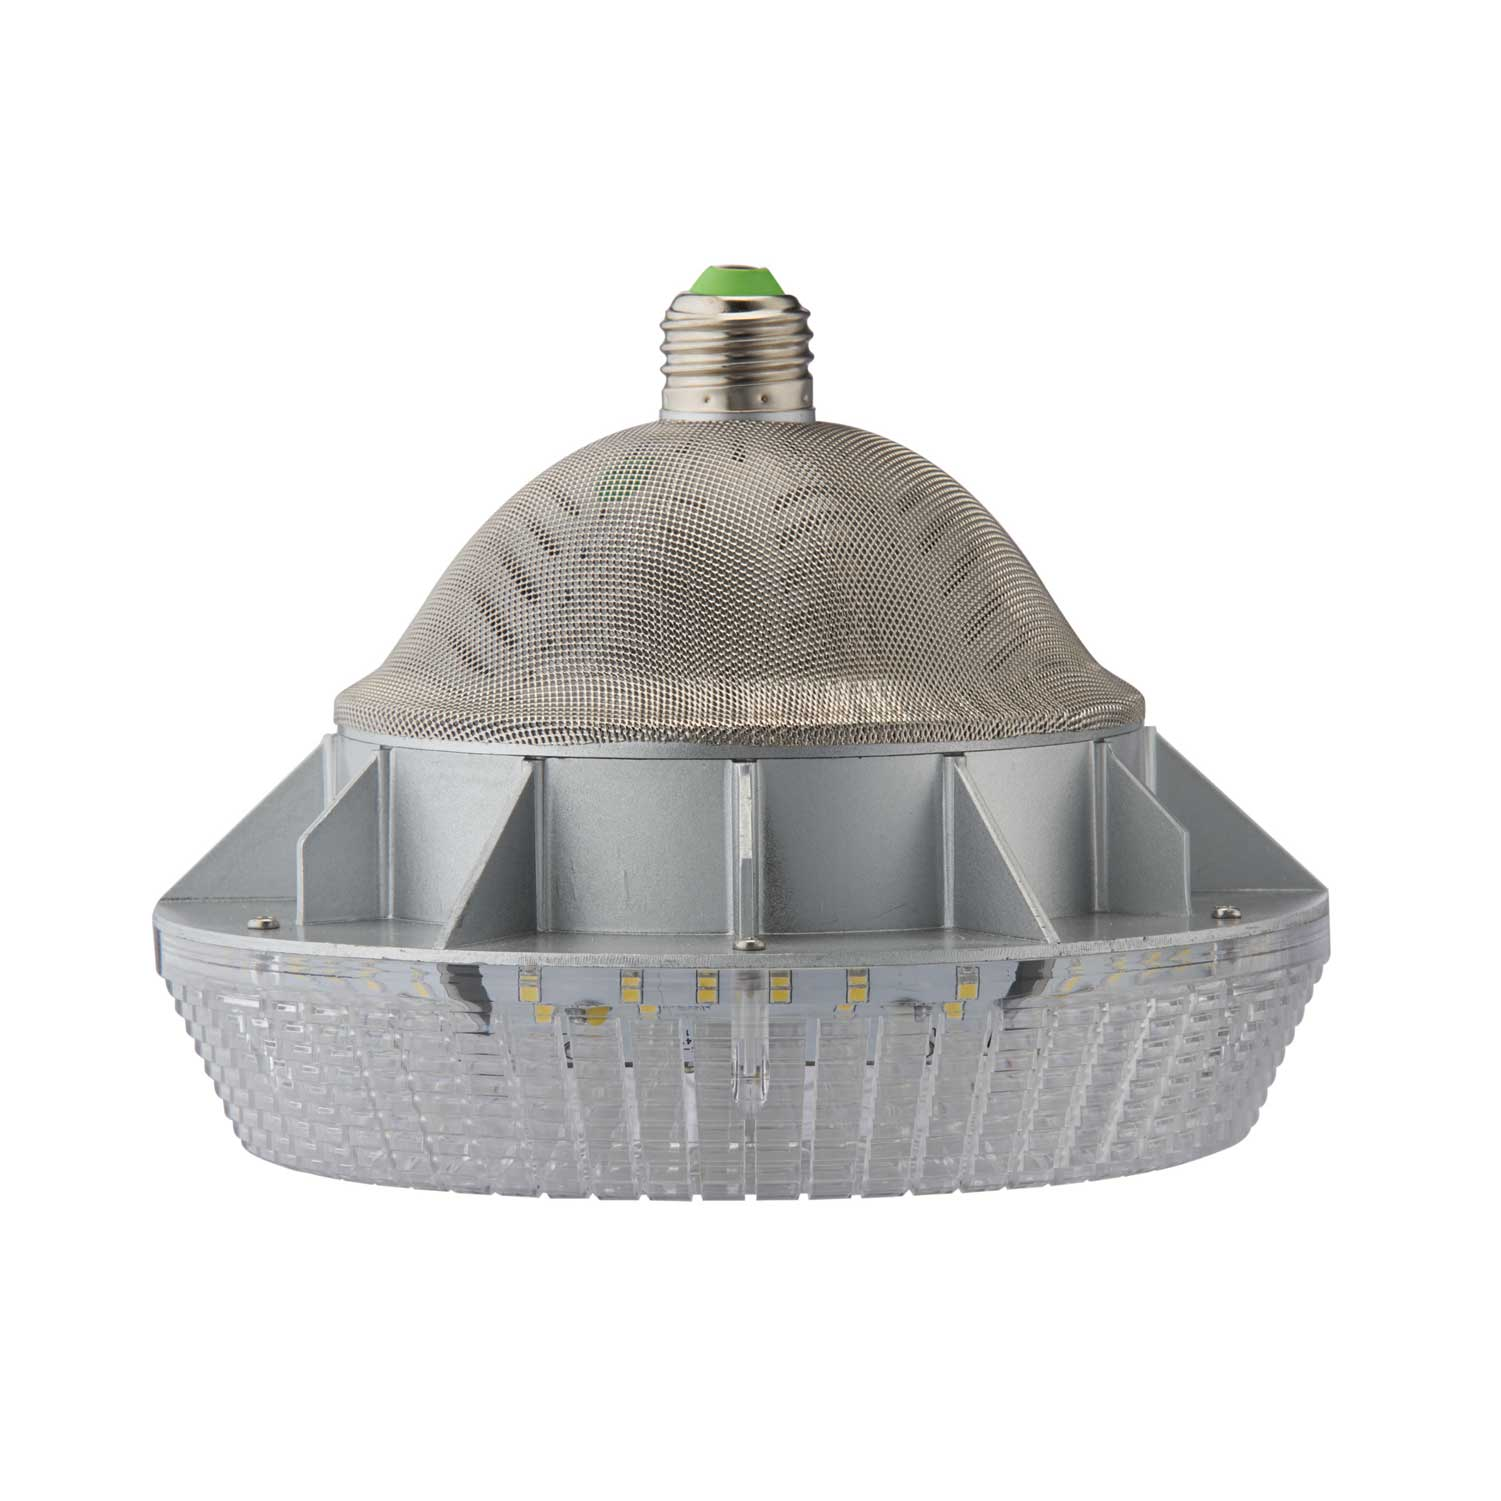 Light Efficient Design Led-8025E42 Bulb 52W Parking Garage